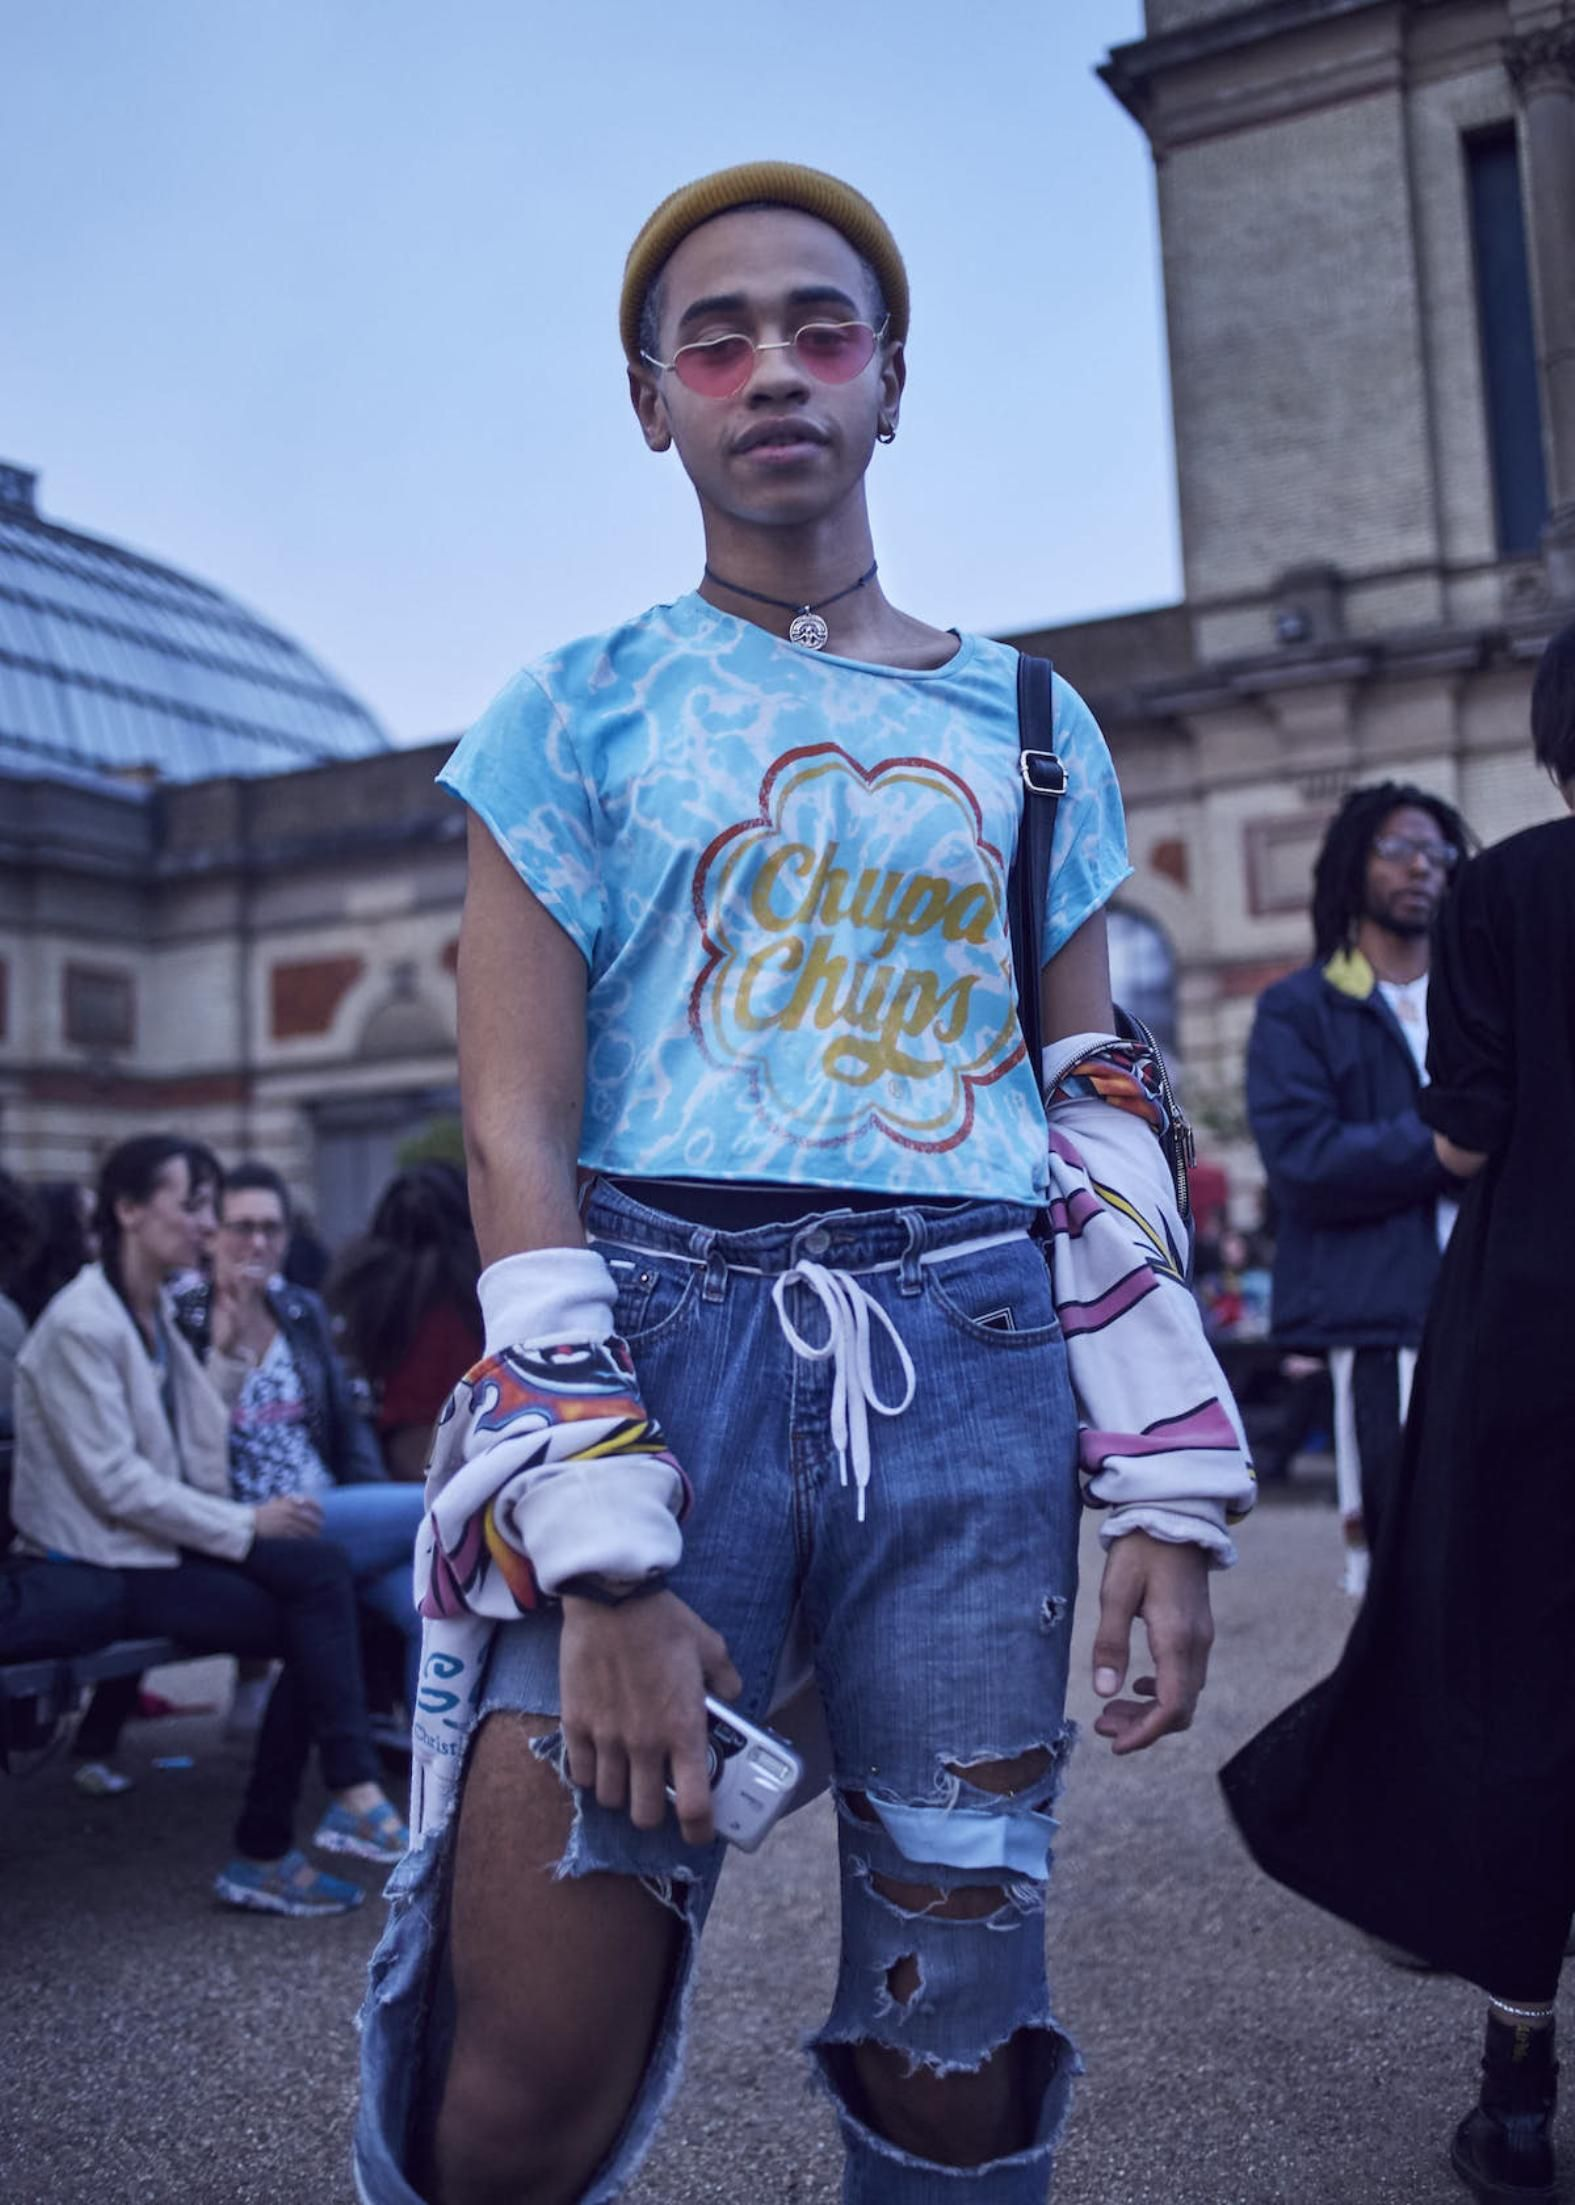 Photos of the colourful joy on display at afropunk fest london